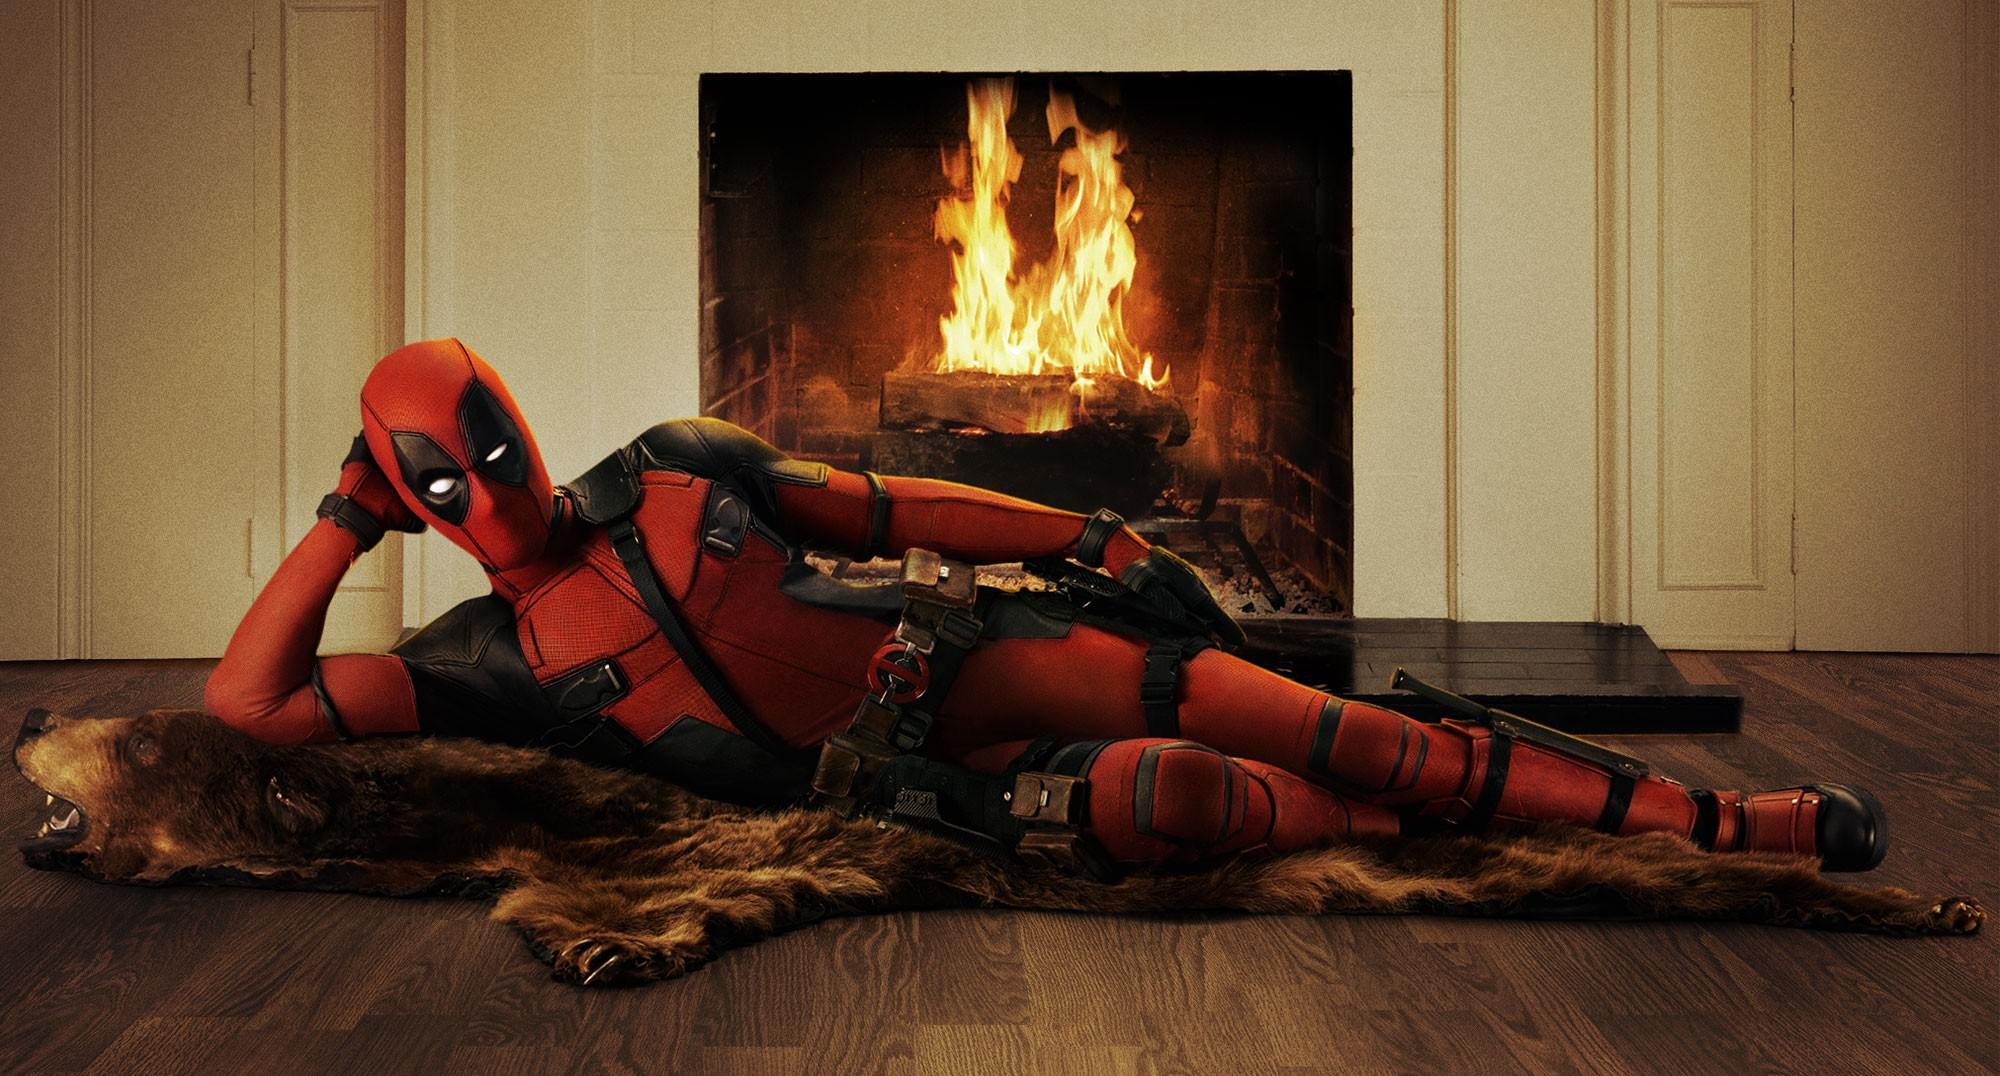 Deadpool, you a dead  fool  for this hilarious pose!